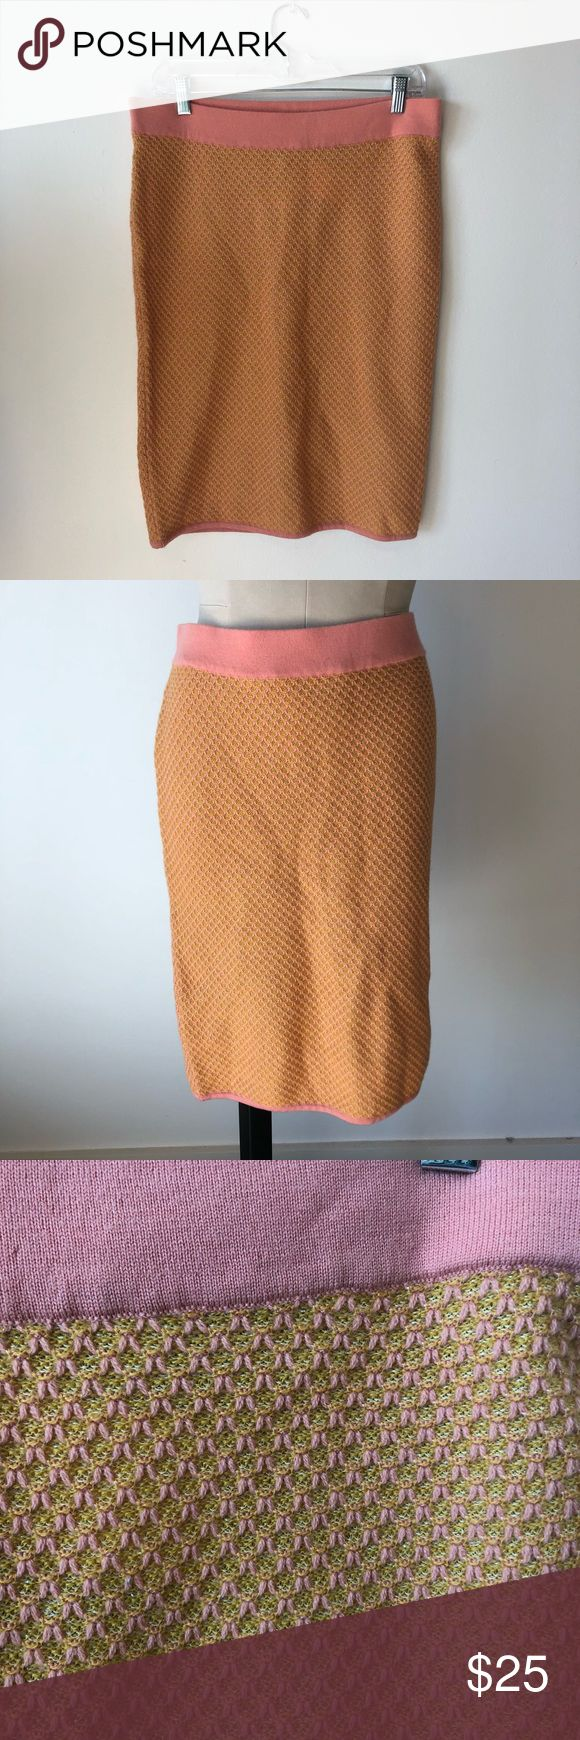 """H&M Pink Yellow Wool Skirt NWT H&M Pink Yellow Wool (81%) Skirt NWT  Size 12  small """"hole"""" in band of skirt - see picture H&M Skirts Midi"""